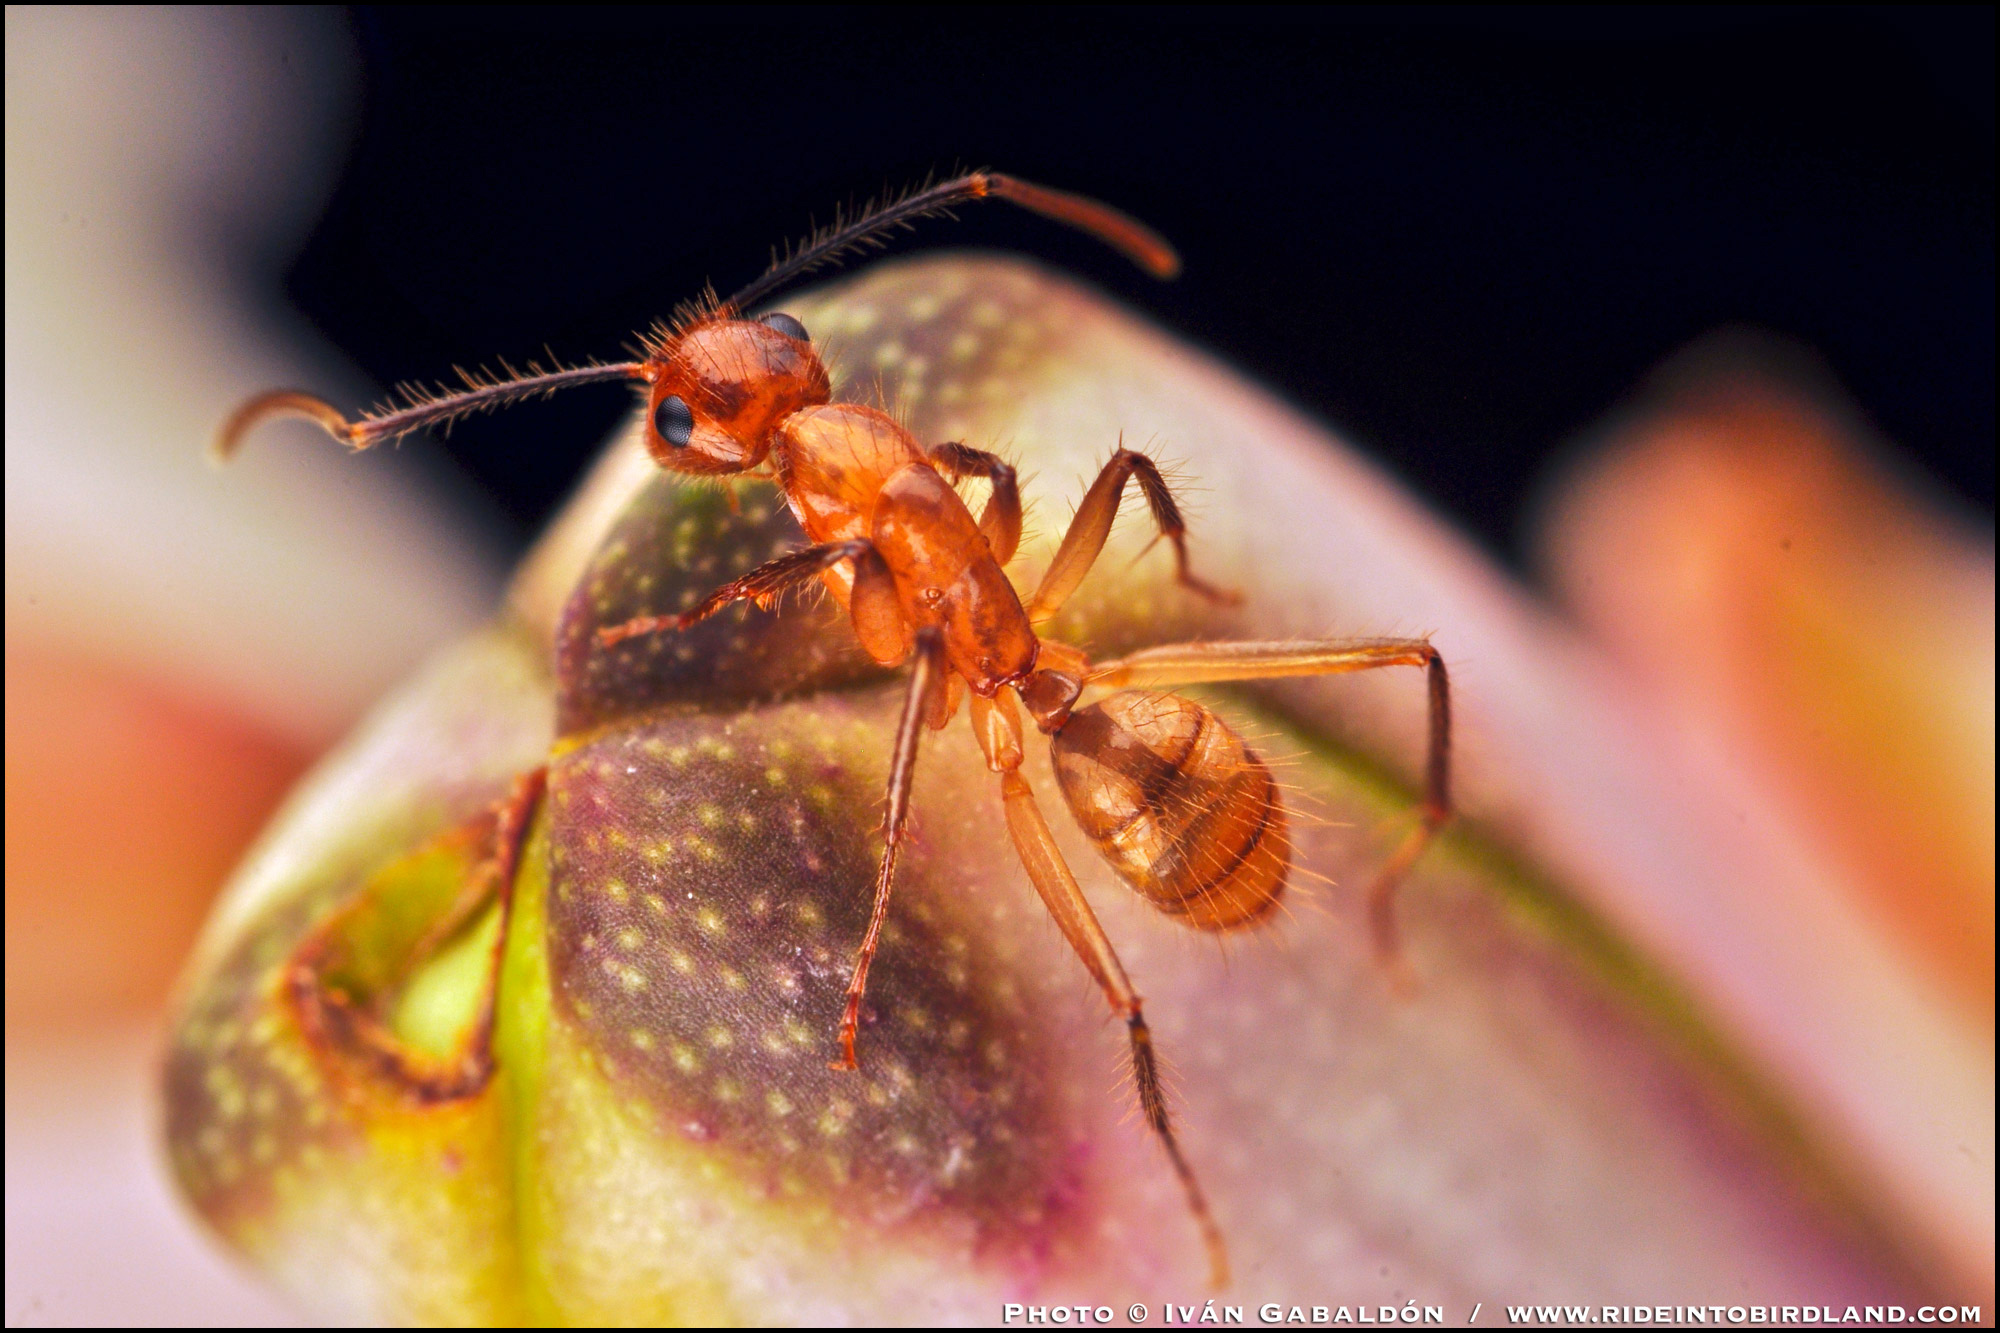 A detailed view showing the ant's many hairs. (Photo © Iván Gabaldón).